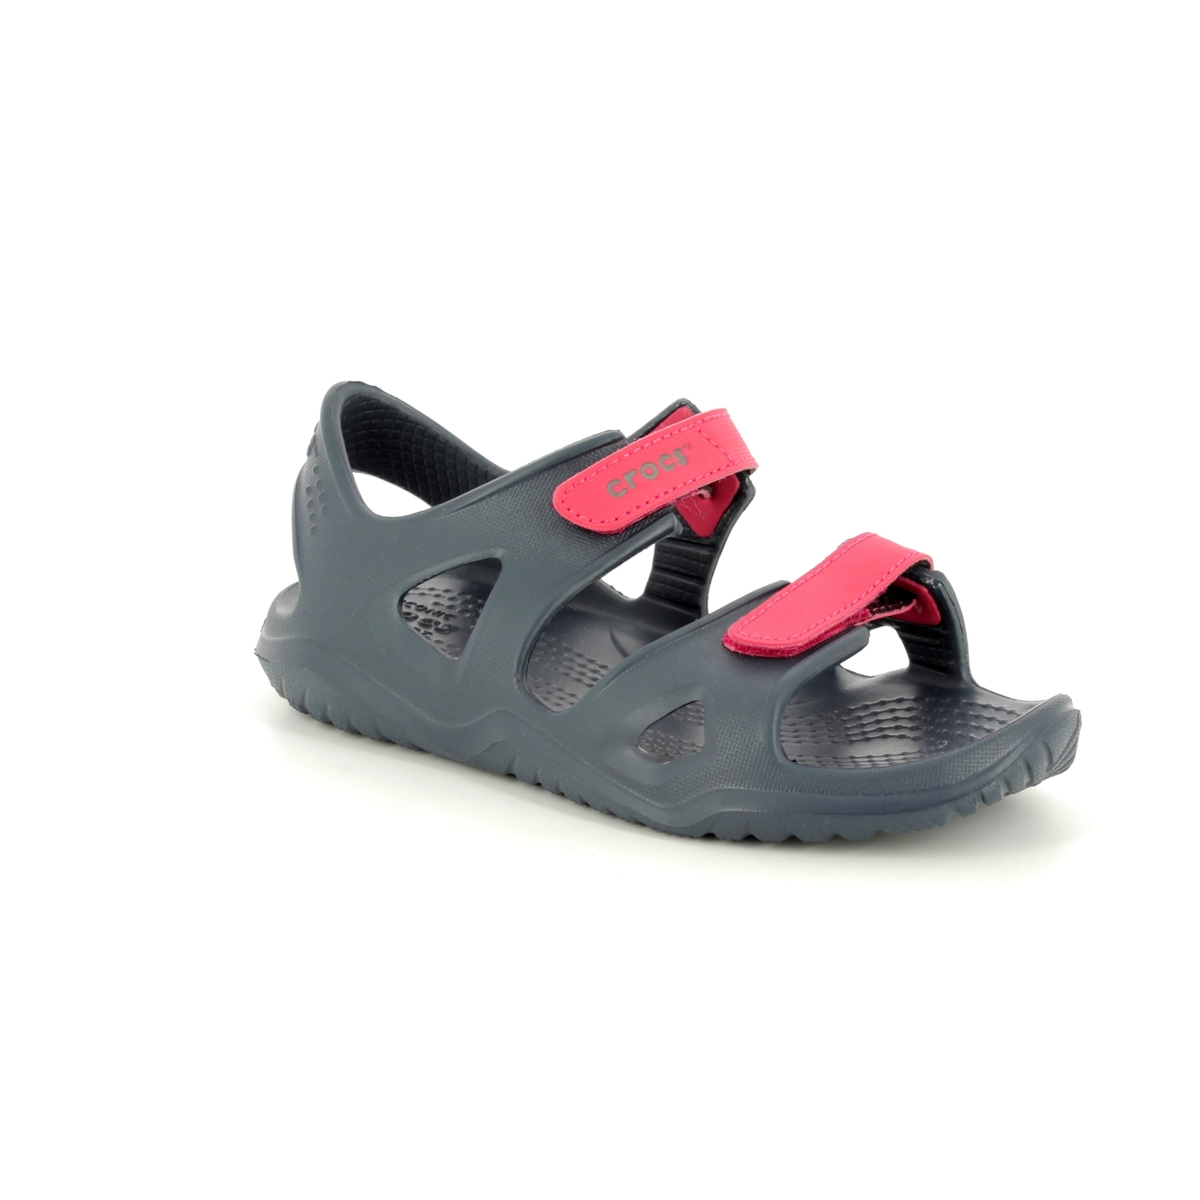 1ce348819703 Crocs Sandals - Navy multi - 204988 4BA SWIFTWATER KID